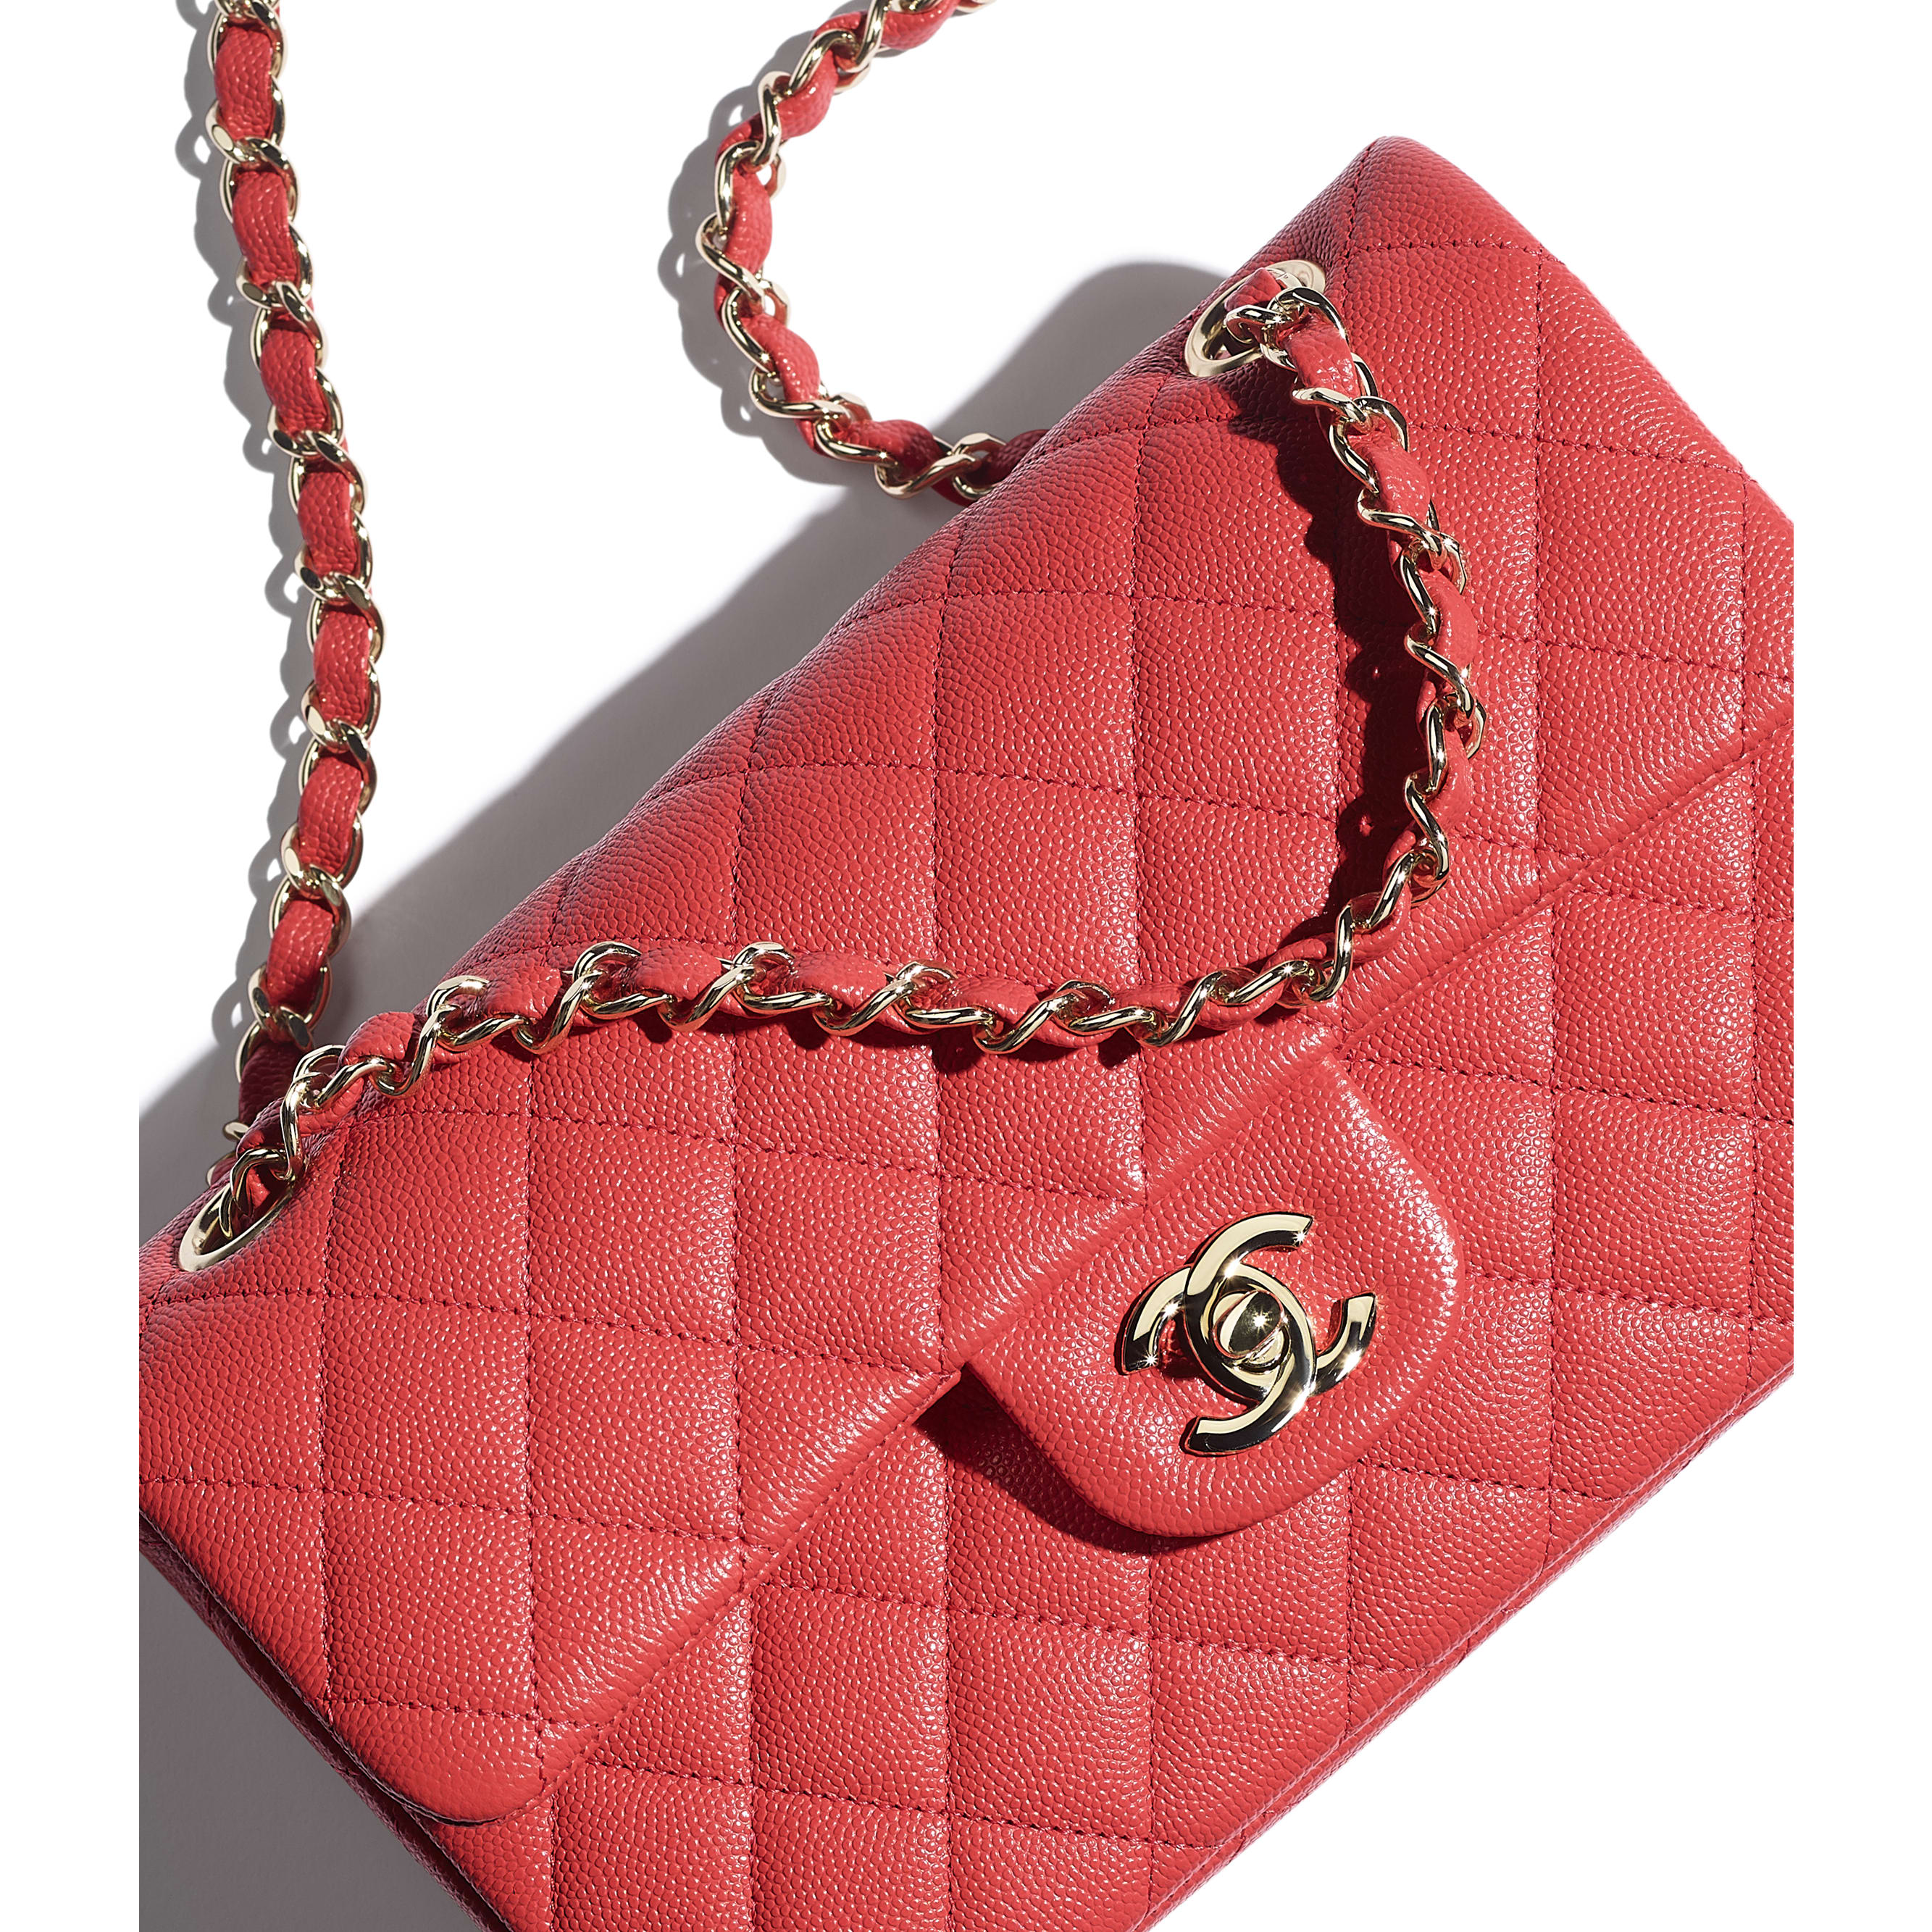 Classic Handbag - Red - Grained Calfskin & Gold-Tone Metal - CHANEL - Extra view - see standard sized version